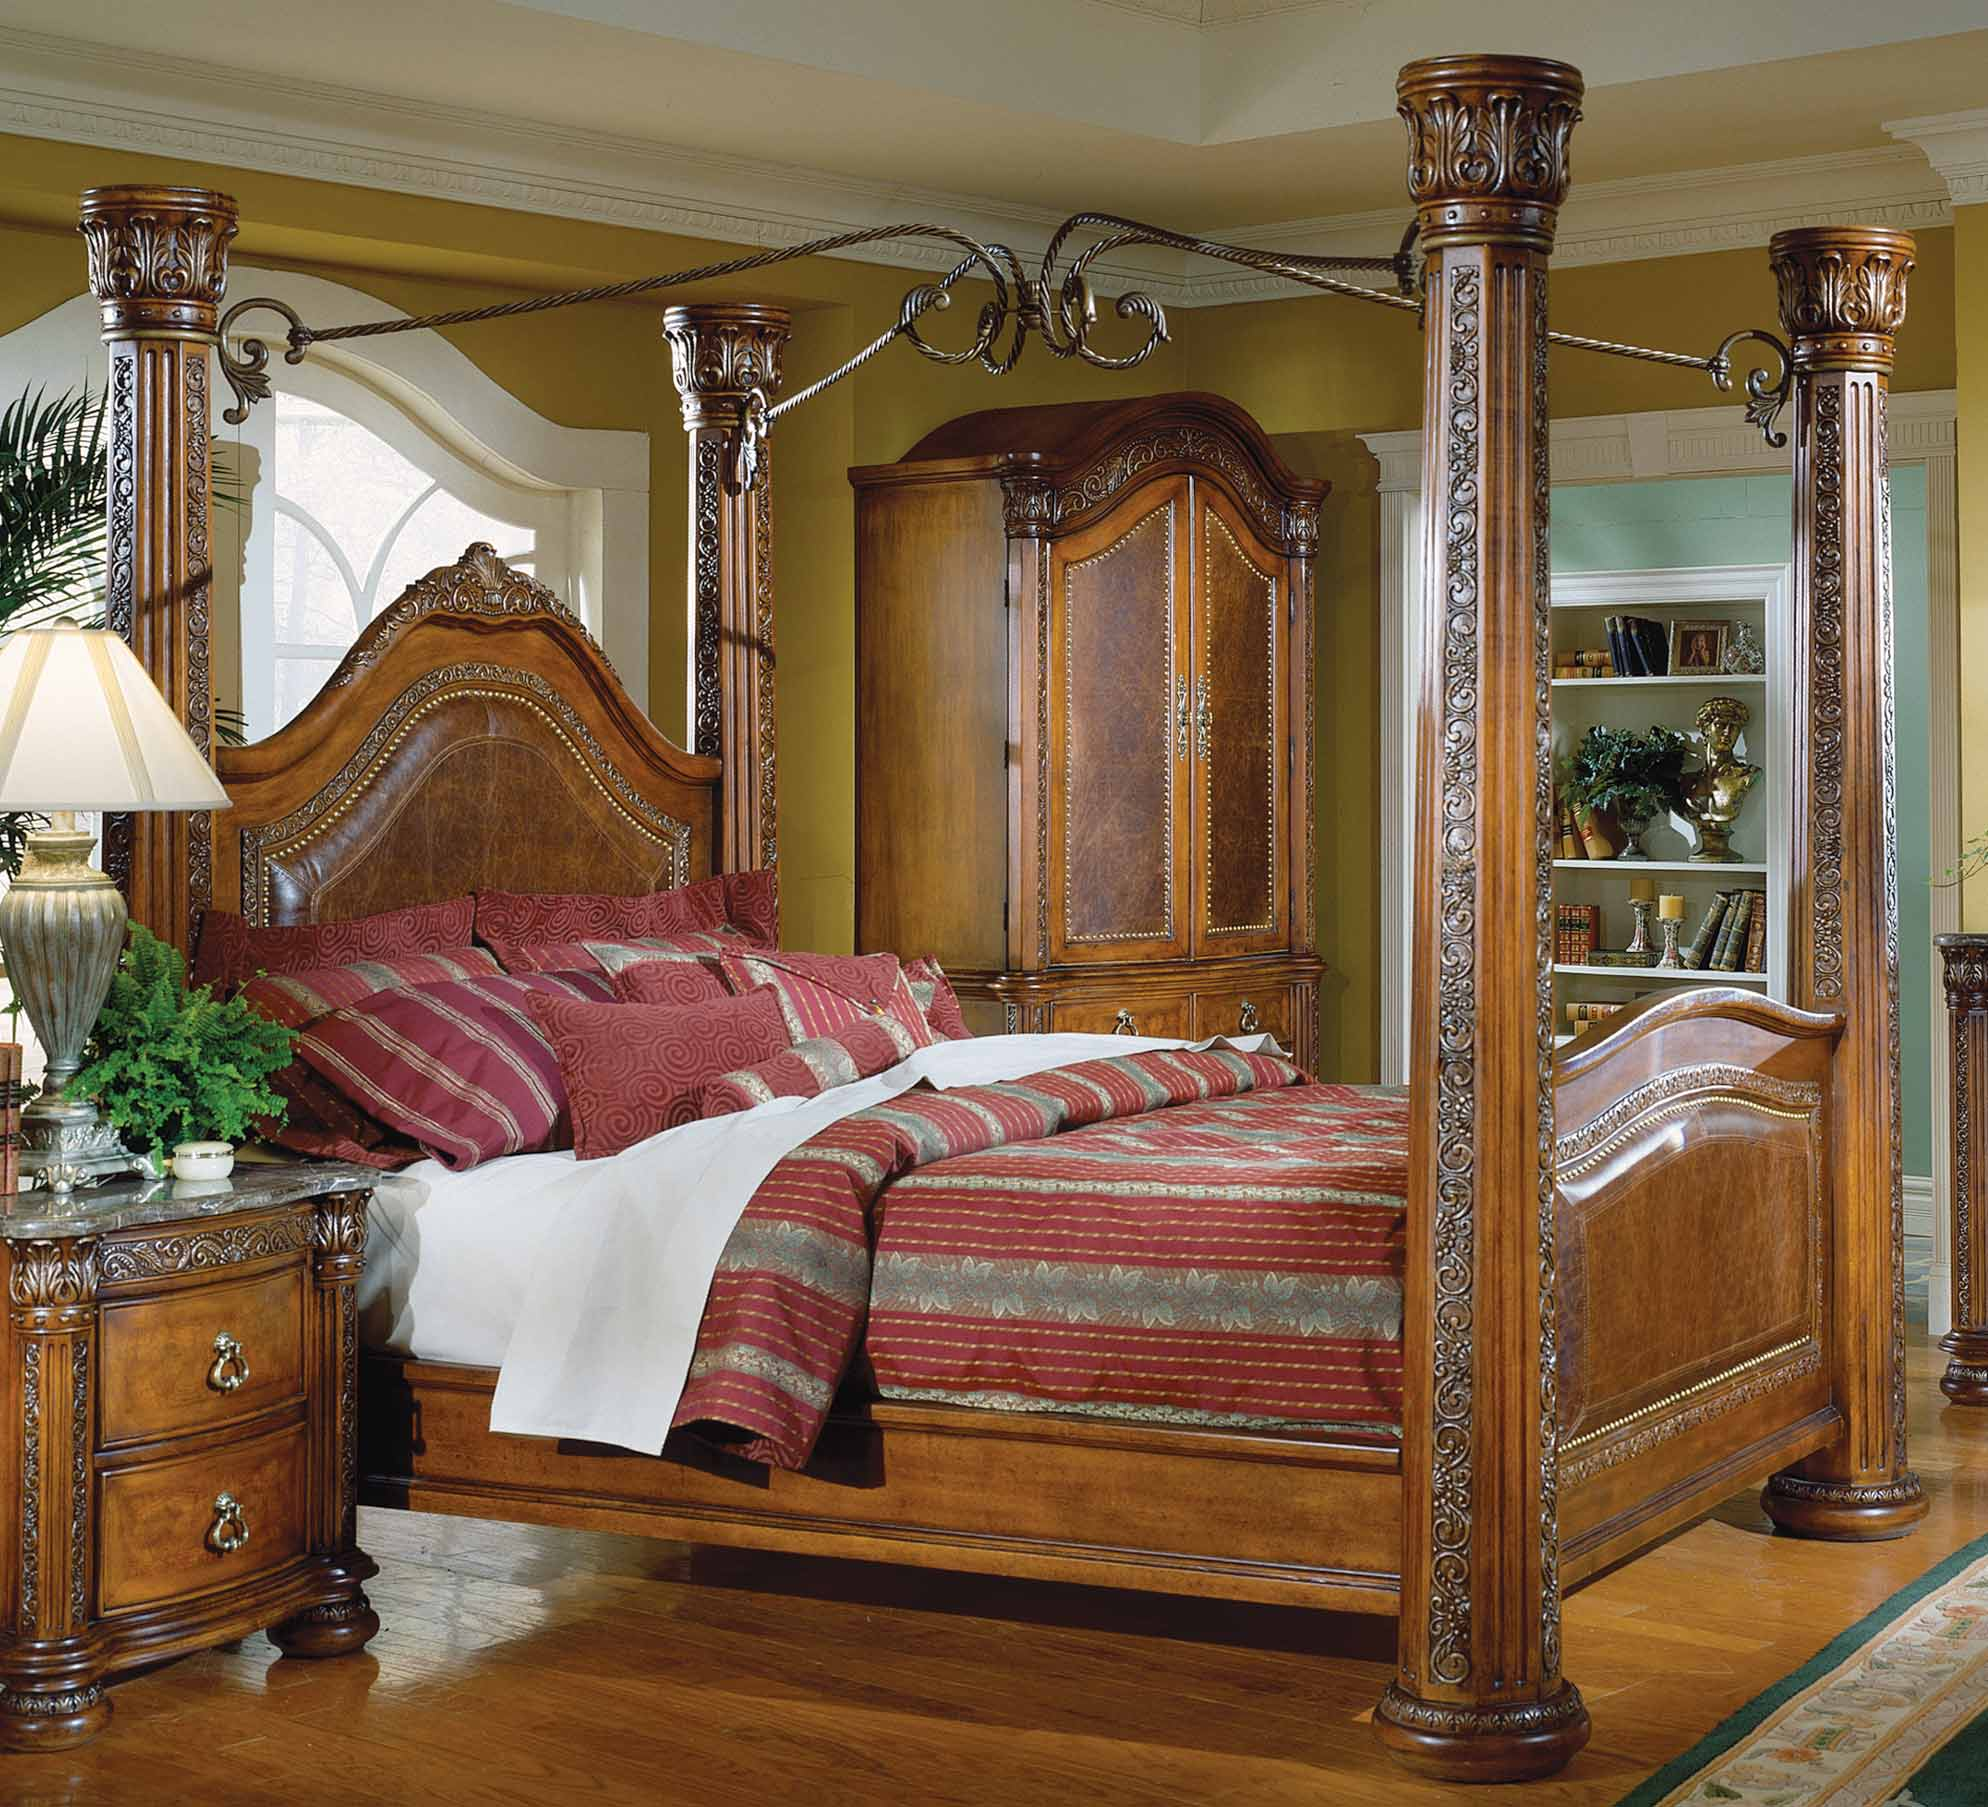 Homelegance Spanish Hills Canopy Bed with Leather. Homelegance Spanish Hills Canopy Bed with Leather 851 1